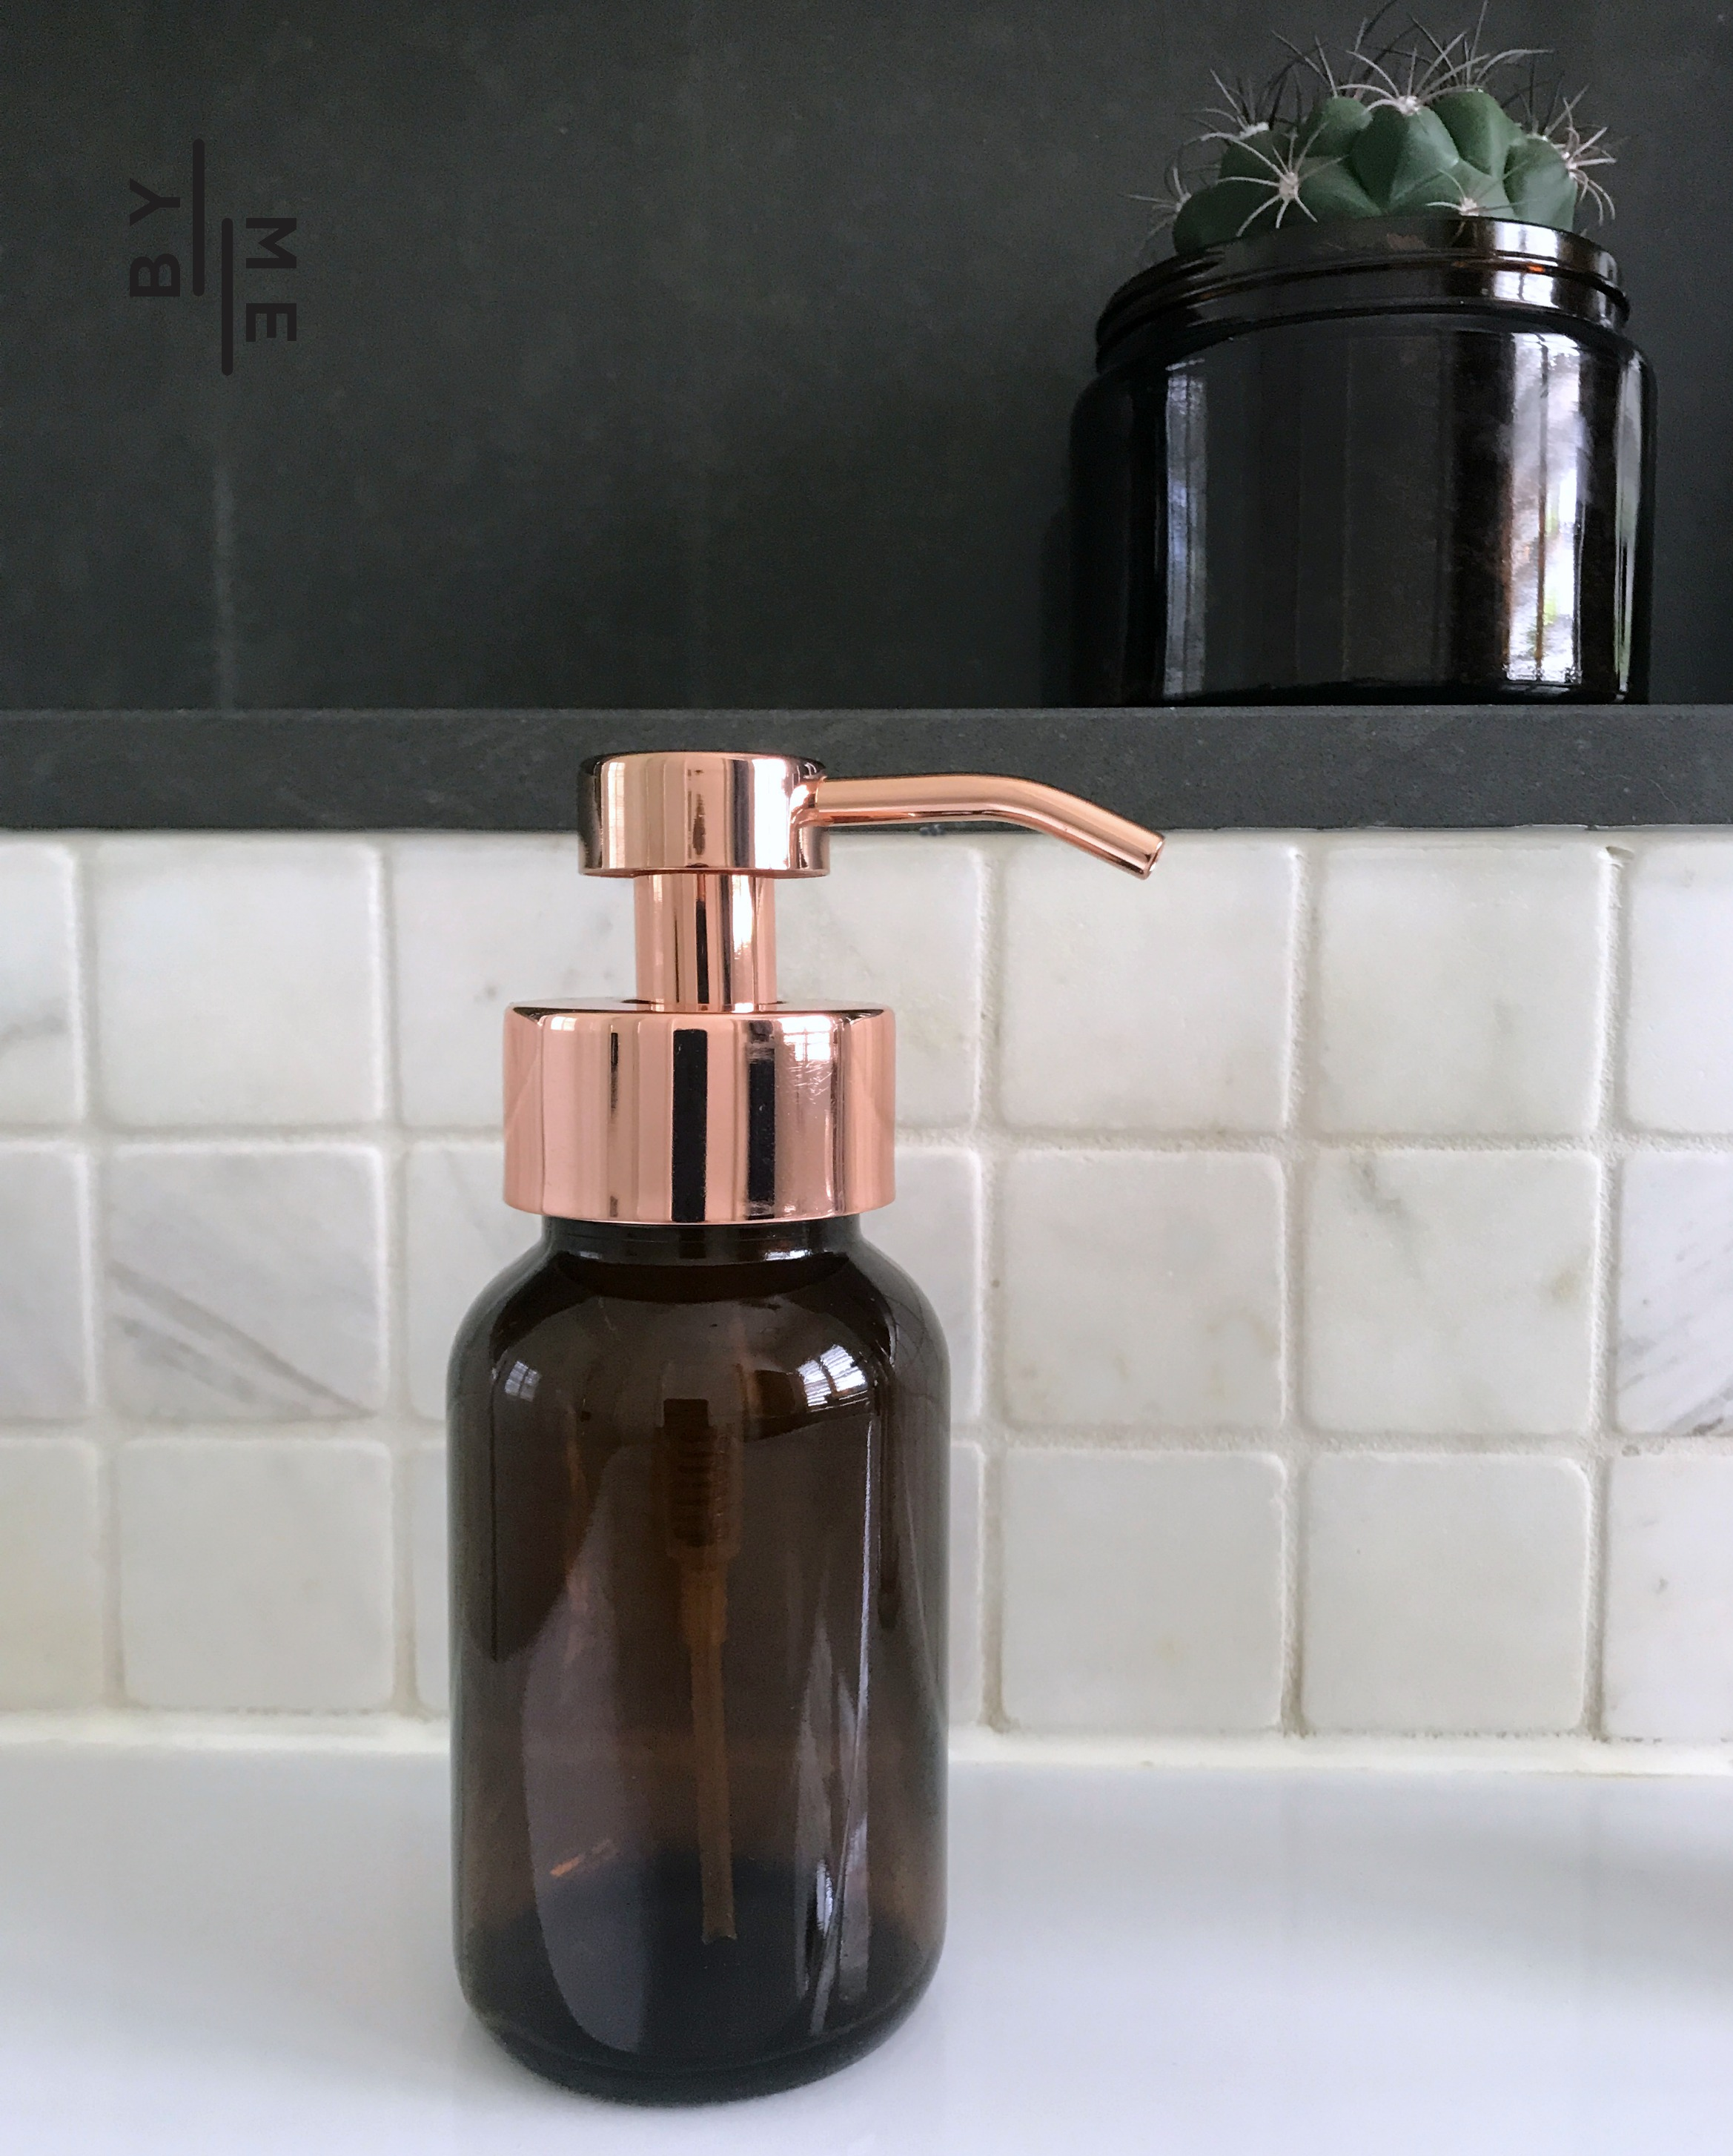 Glass foaming soap dispenser with rose gold pump